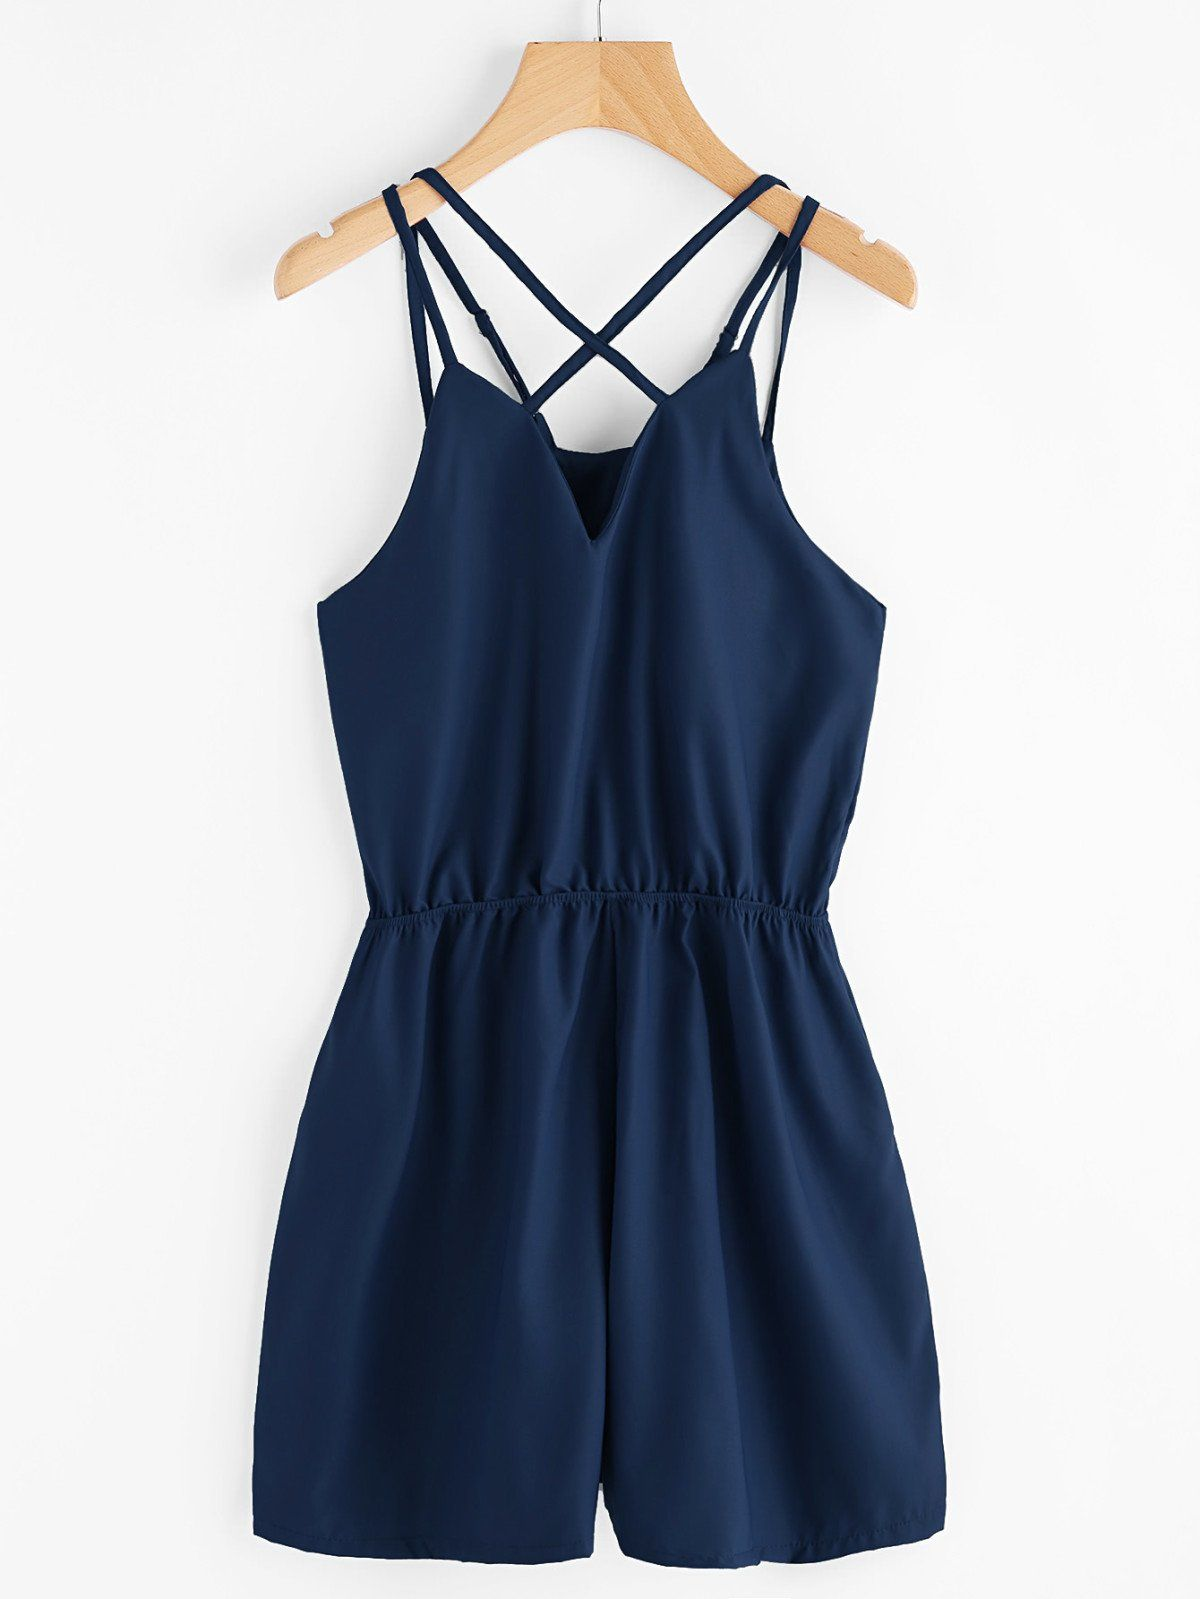 Sleeveless Jumpsuits. Jumpsuits Decorated with Criss Cross. Designed with Spaghetti Strap. Loose fit. Plain design. Trend of Summer-2018. Designed in Navy. Fabric has no stretch.